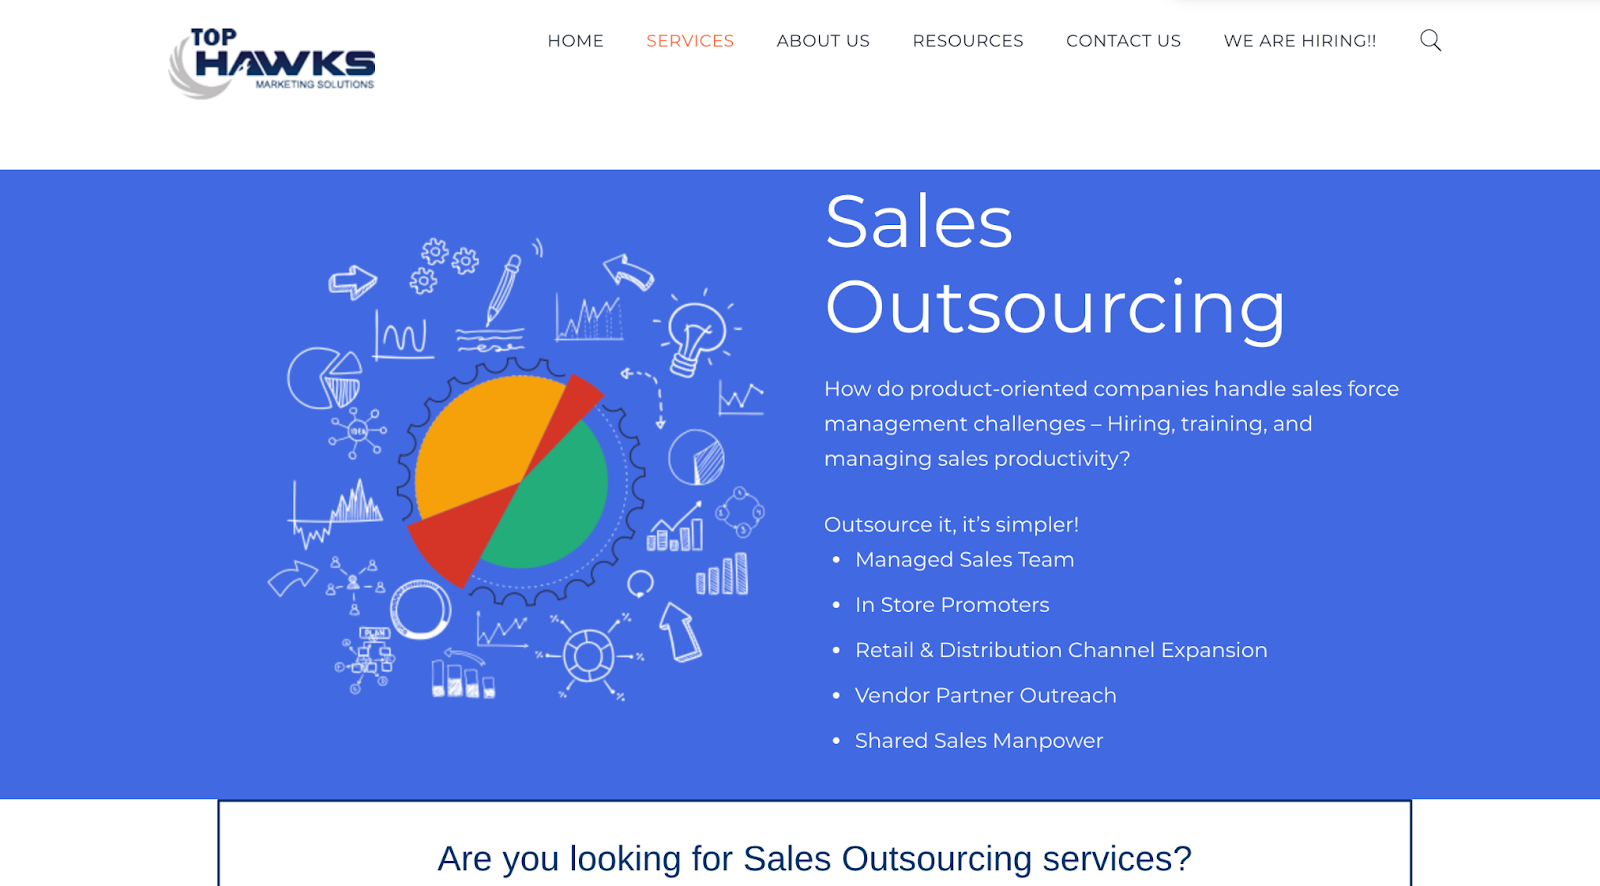 Top Hawks website – sales outsourcing company in India